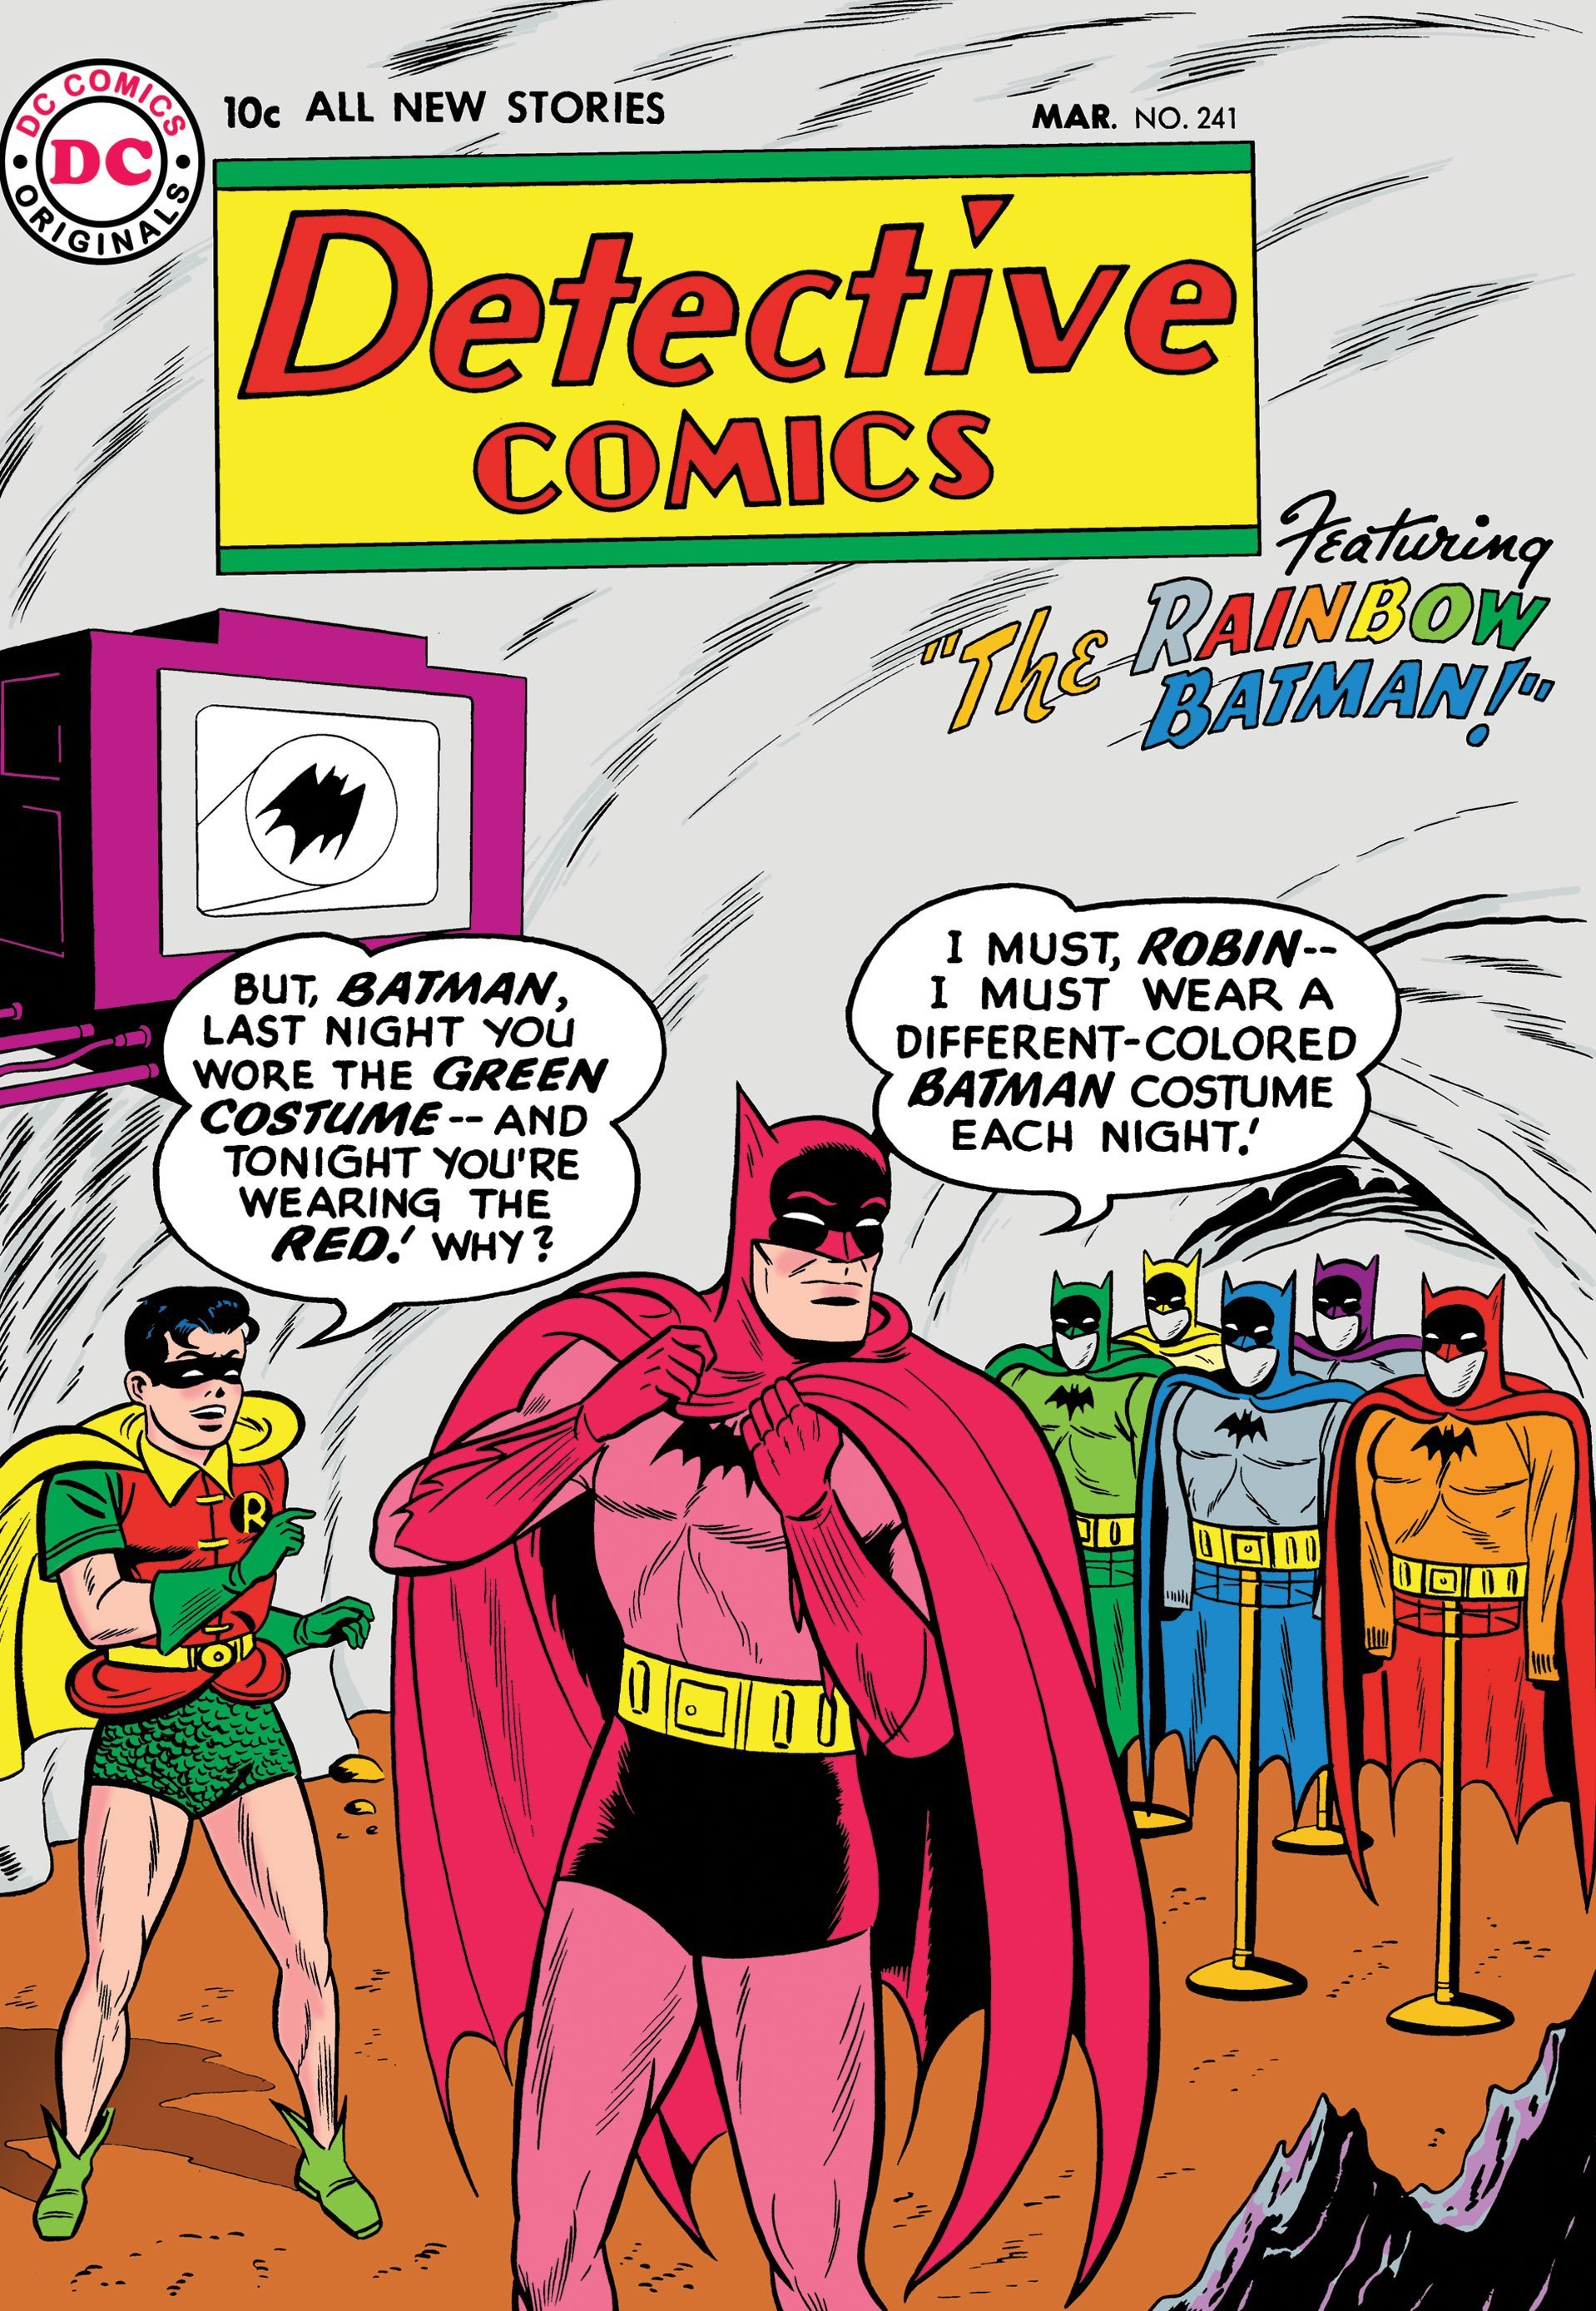 Rainbow-Batman-Comic-Cover.jpg